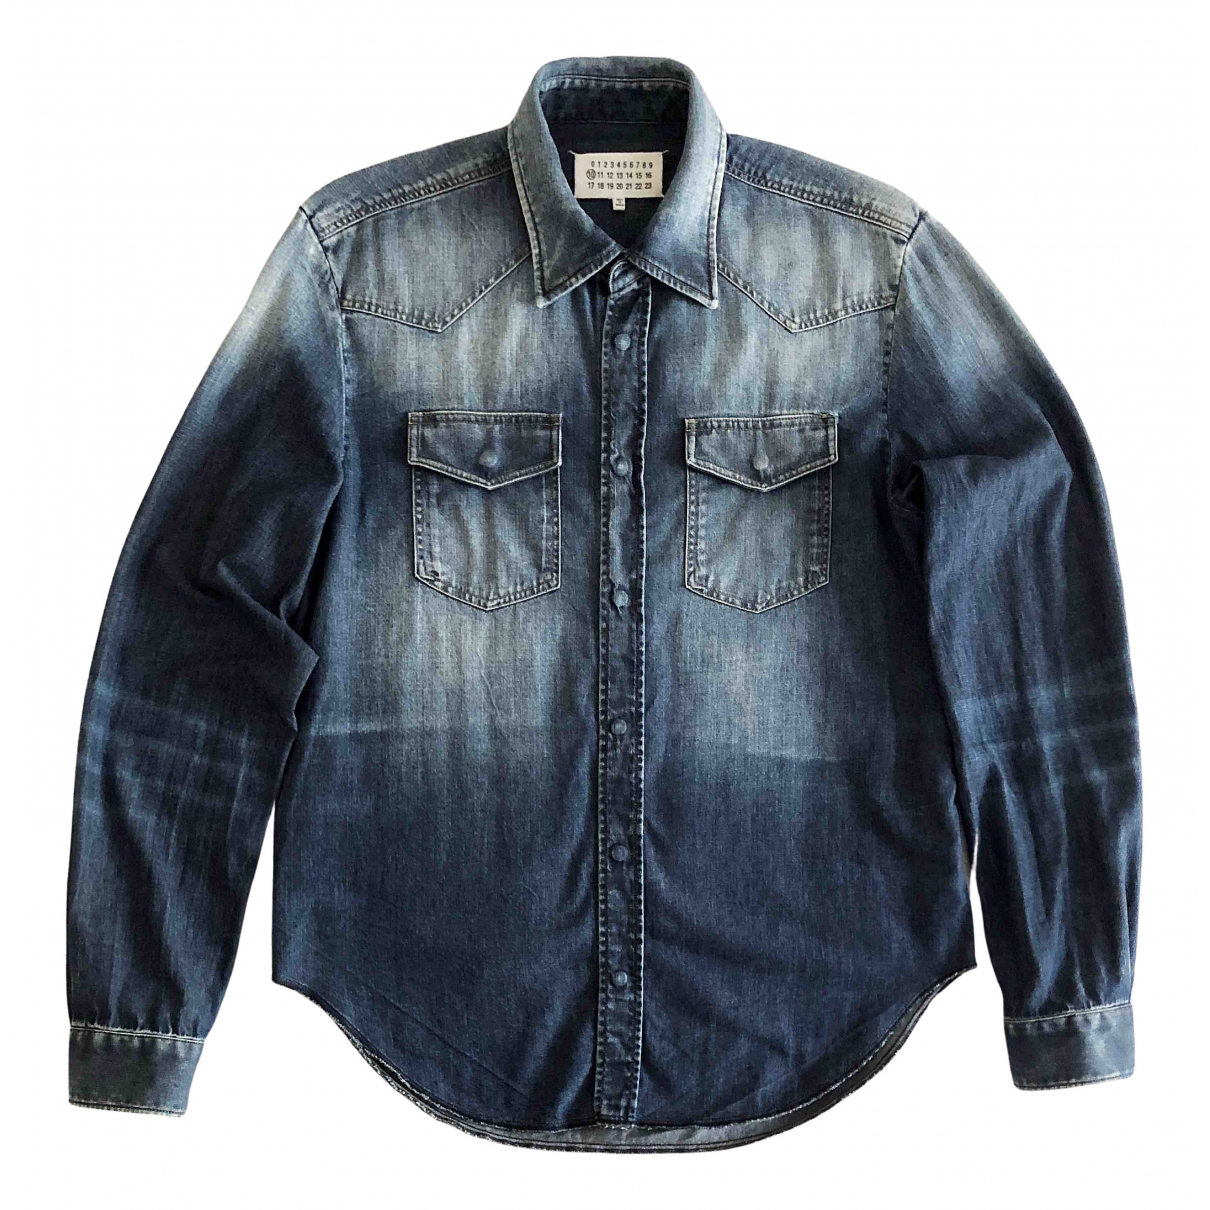 Maison Martin Margiela N Blue Denim - Jeans Shirts for Men M International